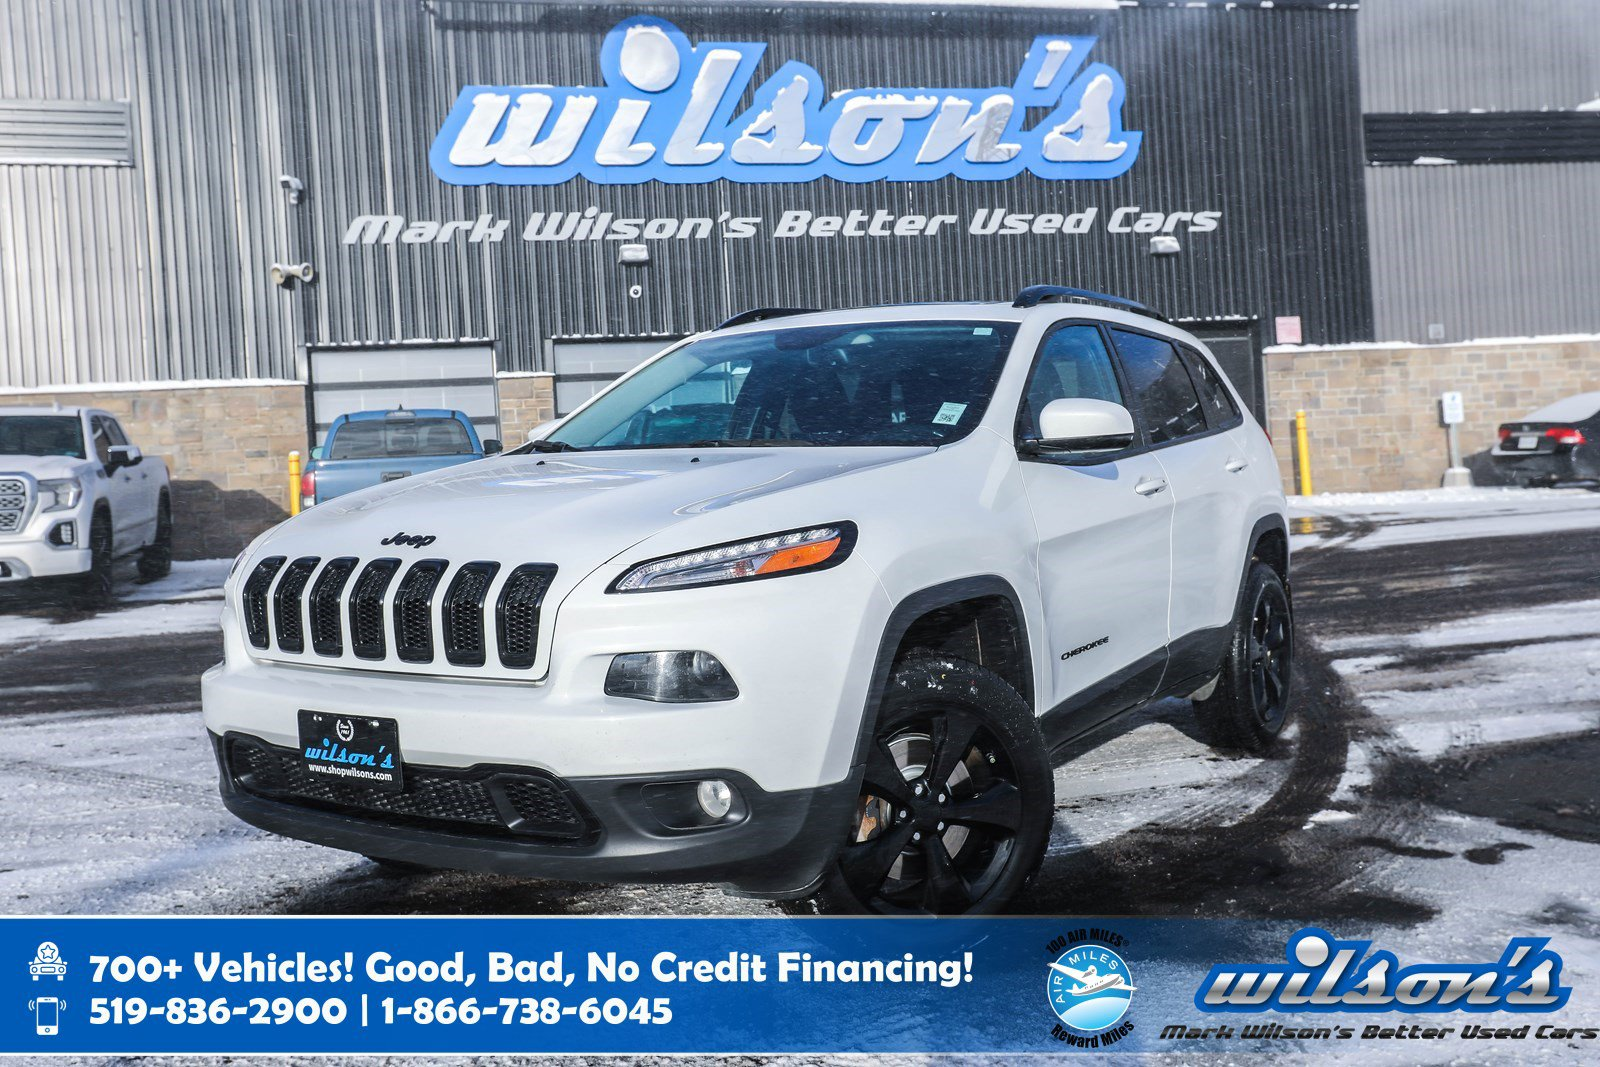 Certified Pre-Owned 2017 Jeep Cherokee Limited V6 4x4 - High Altitude, Leather, Sunroof, Navigation, BlindSpot+Rear Cross-Traffic Alert